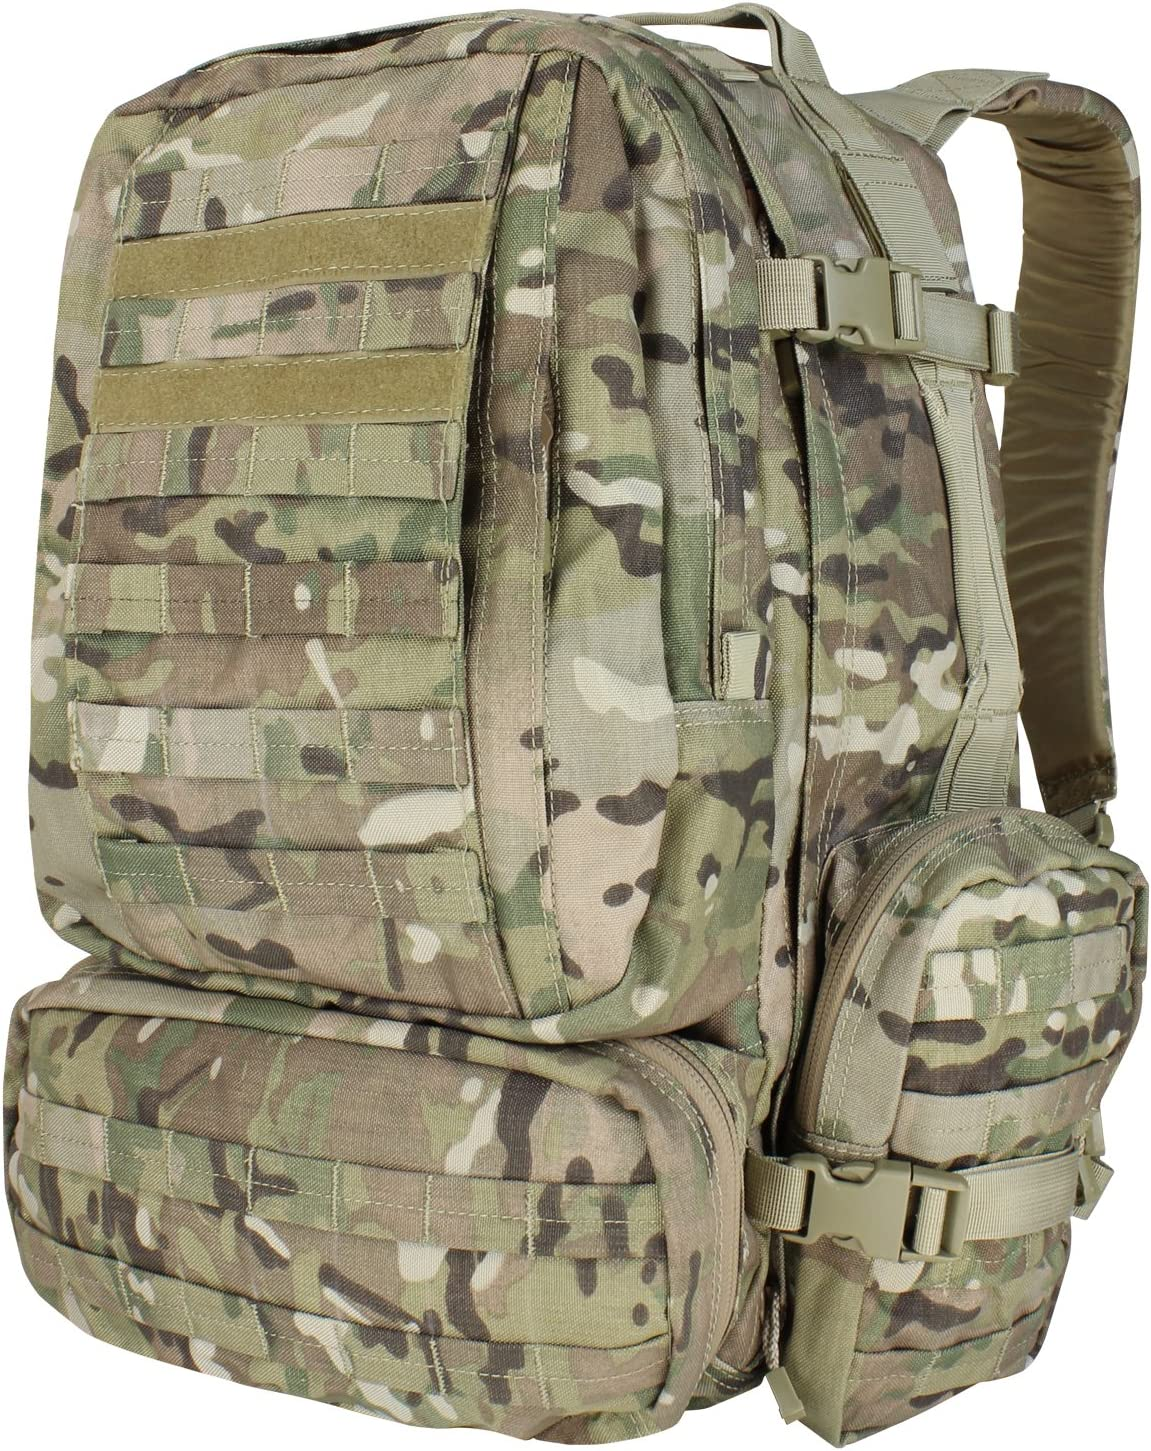 Unisex Travel Duffel Bag Waterproof Fashion Lightweight Large Capacity Portable Luggage Bag Army Special Forces Division Iraq Combat Veteran